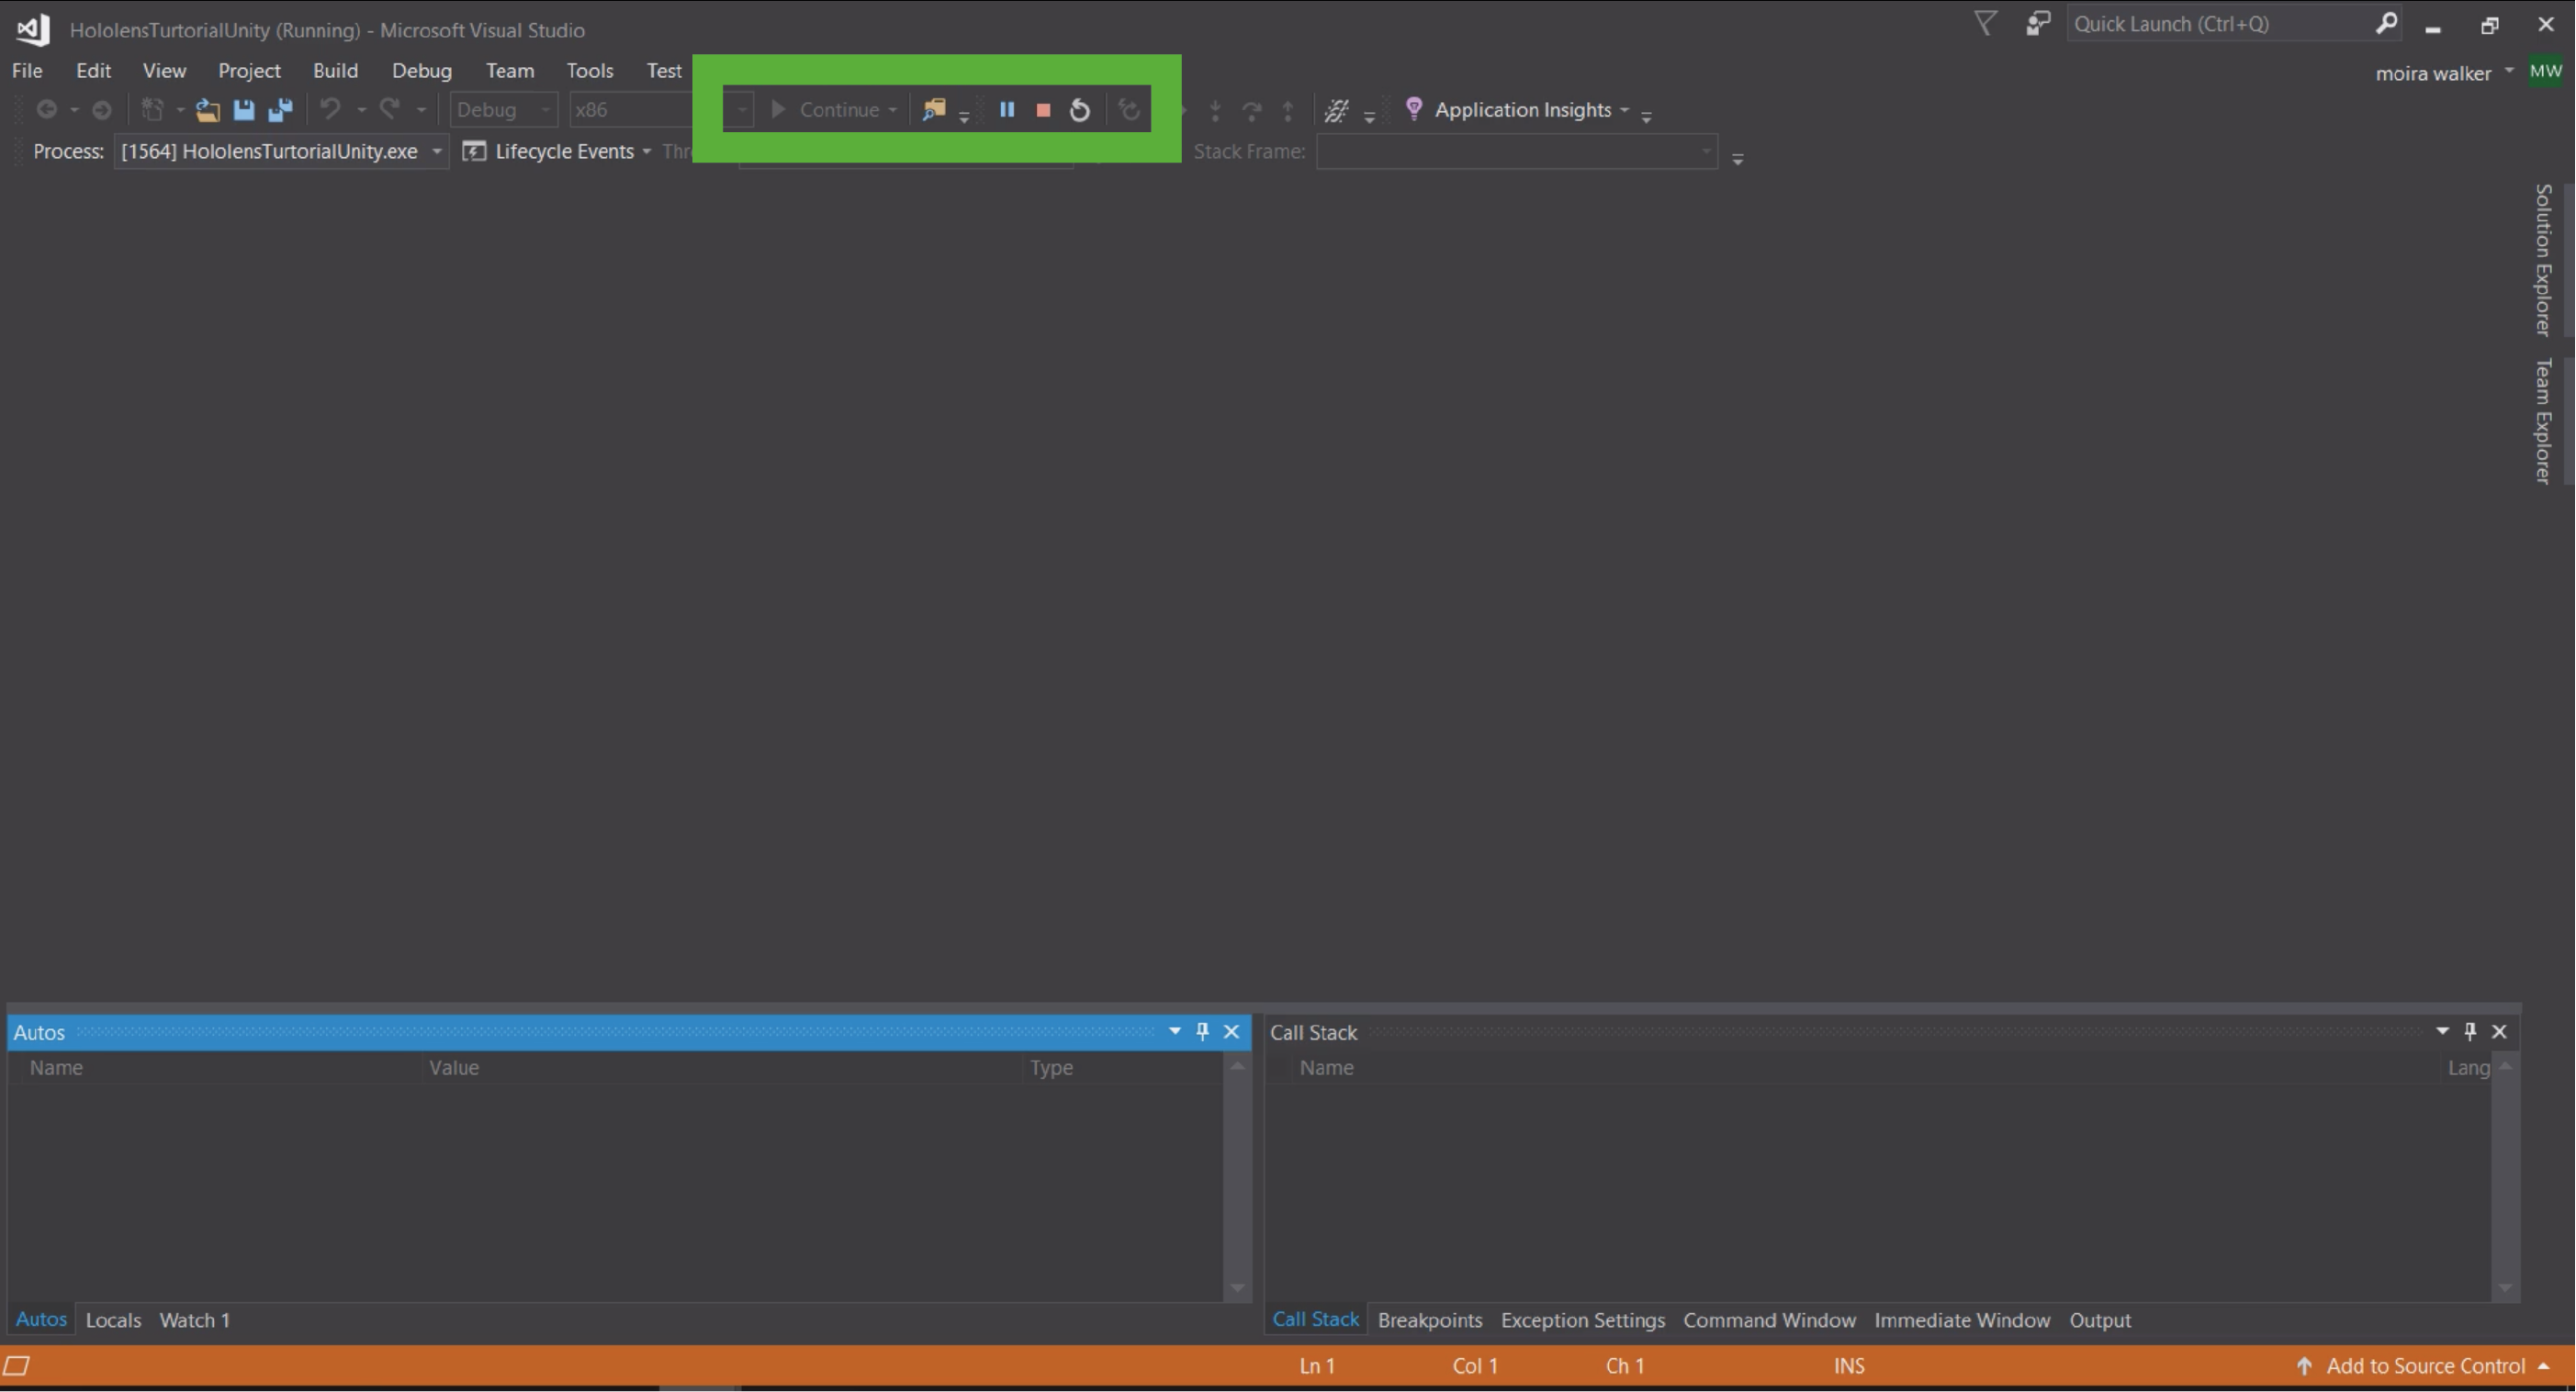 Step by step HoloLens 1 with Unity and Visual Studio Tutorial